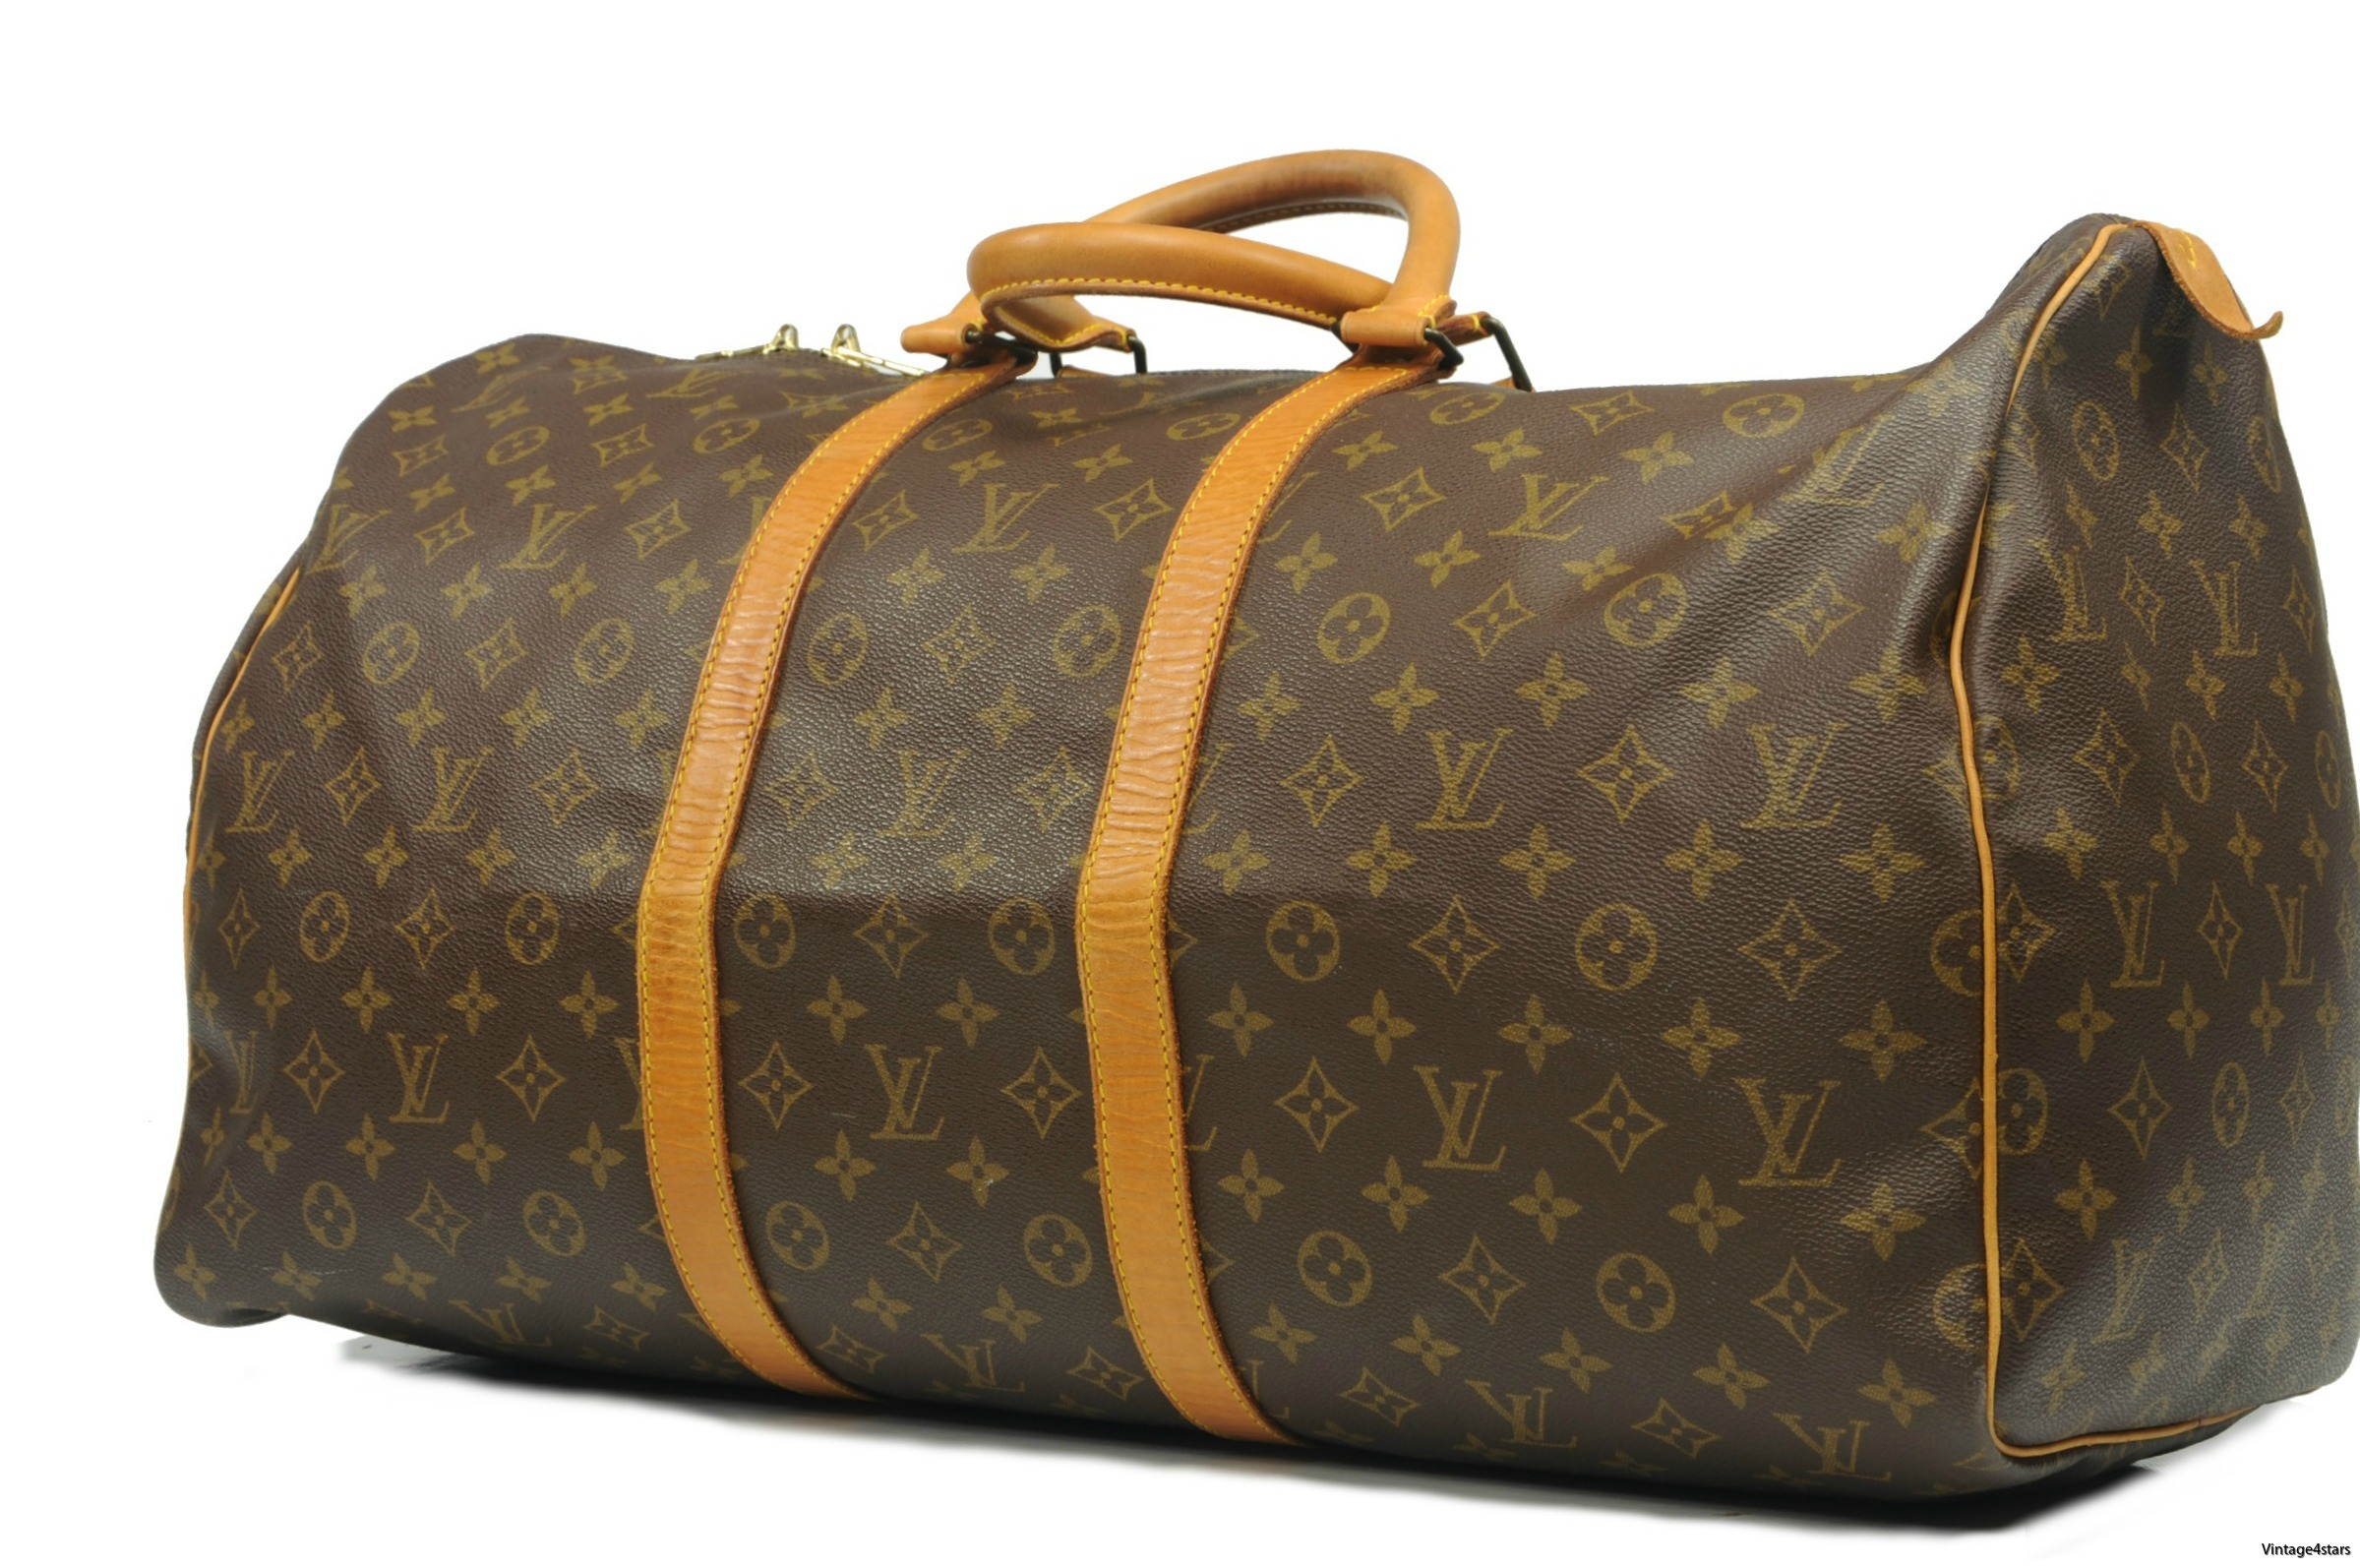 Louis vuitton Keepall 55 201